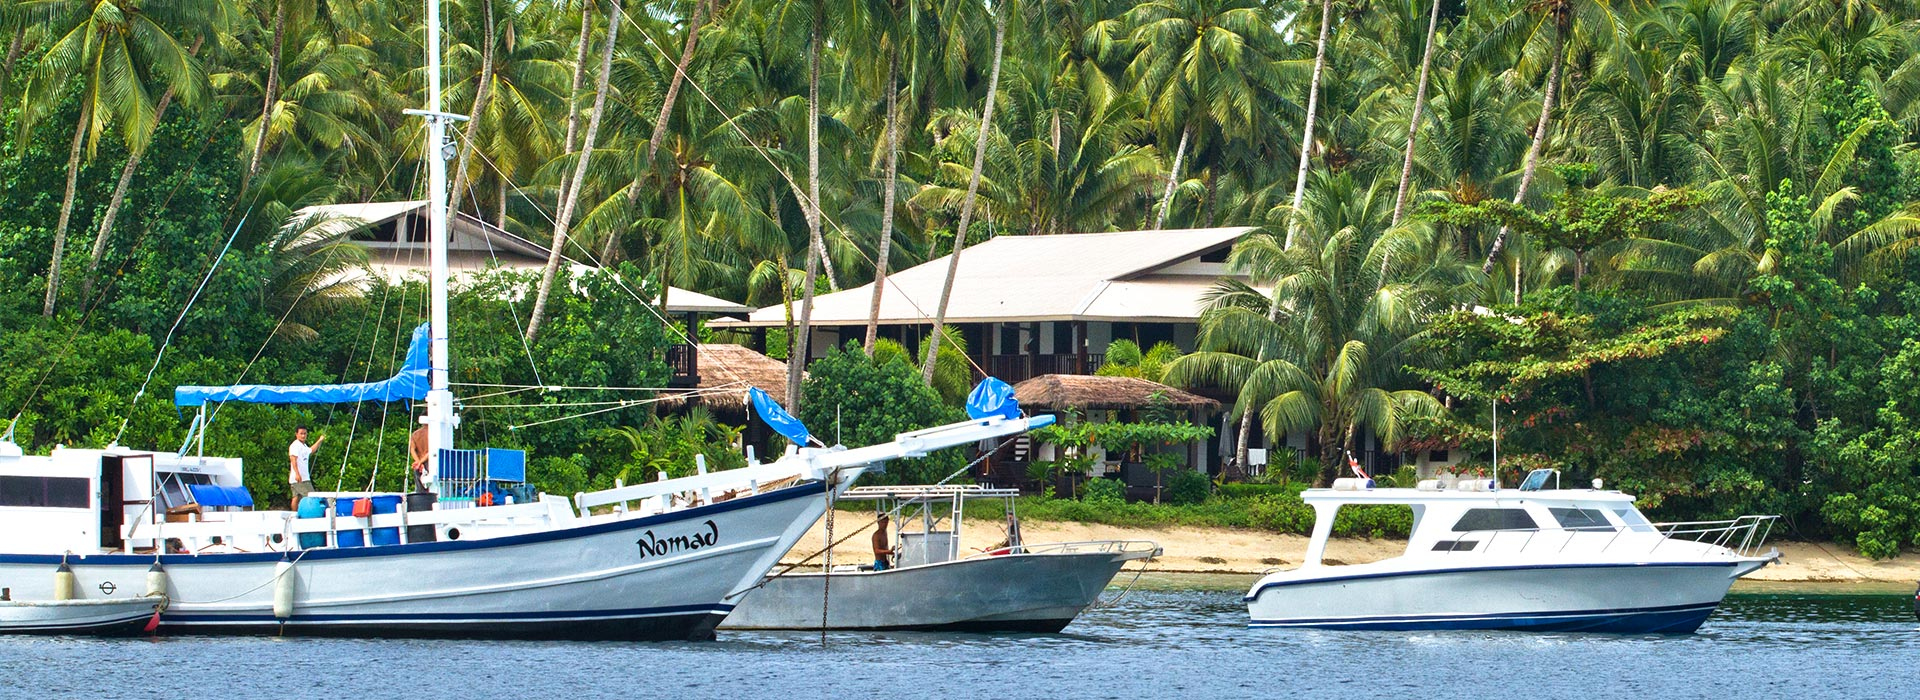 nomad-surf-charters-4